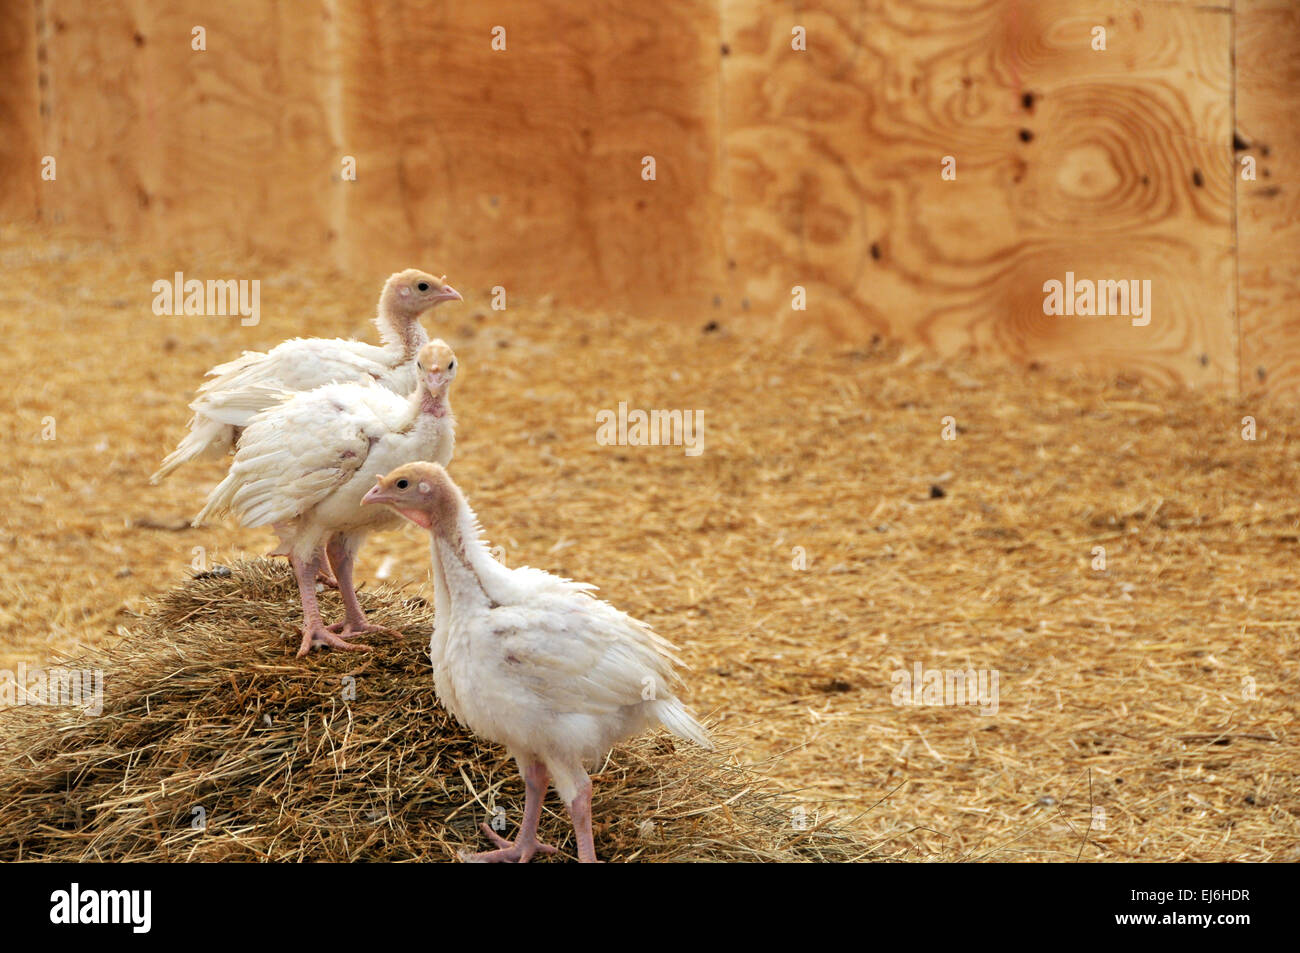 Young turkeys on straw in farm - Stock Image